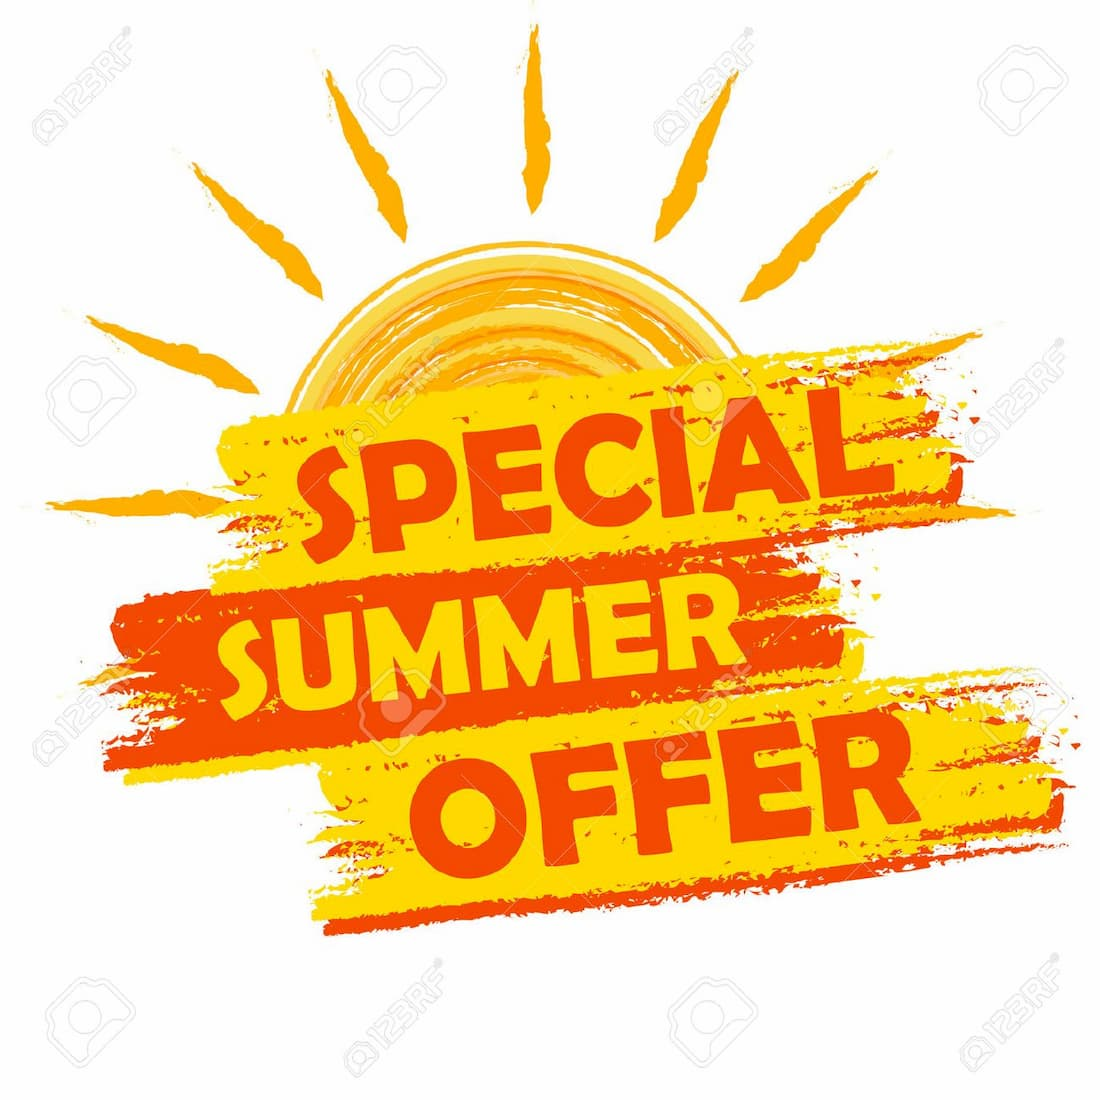 special-summer-offer-on Electric radiators -2